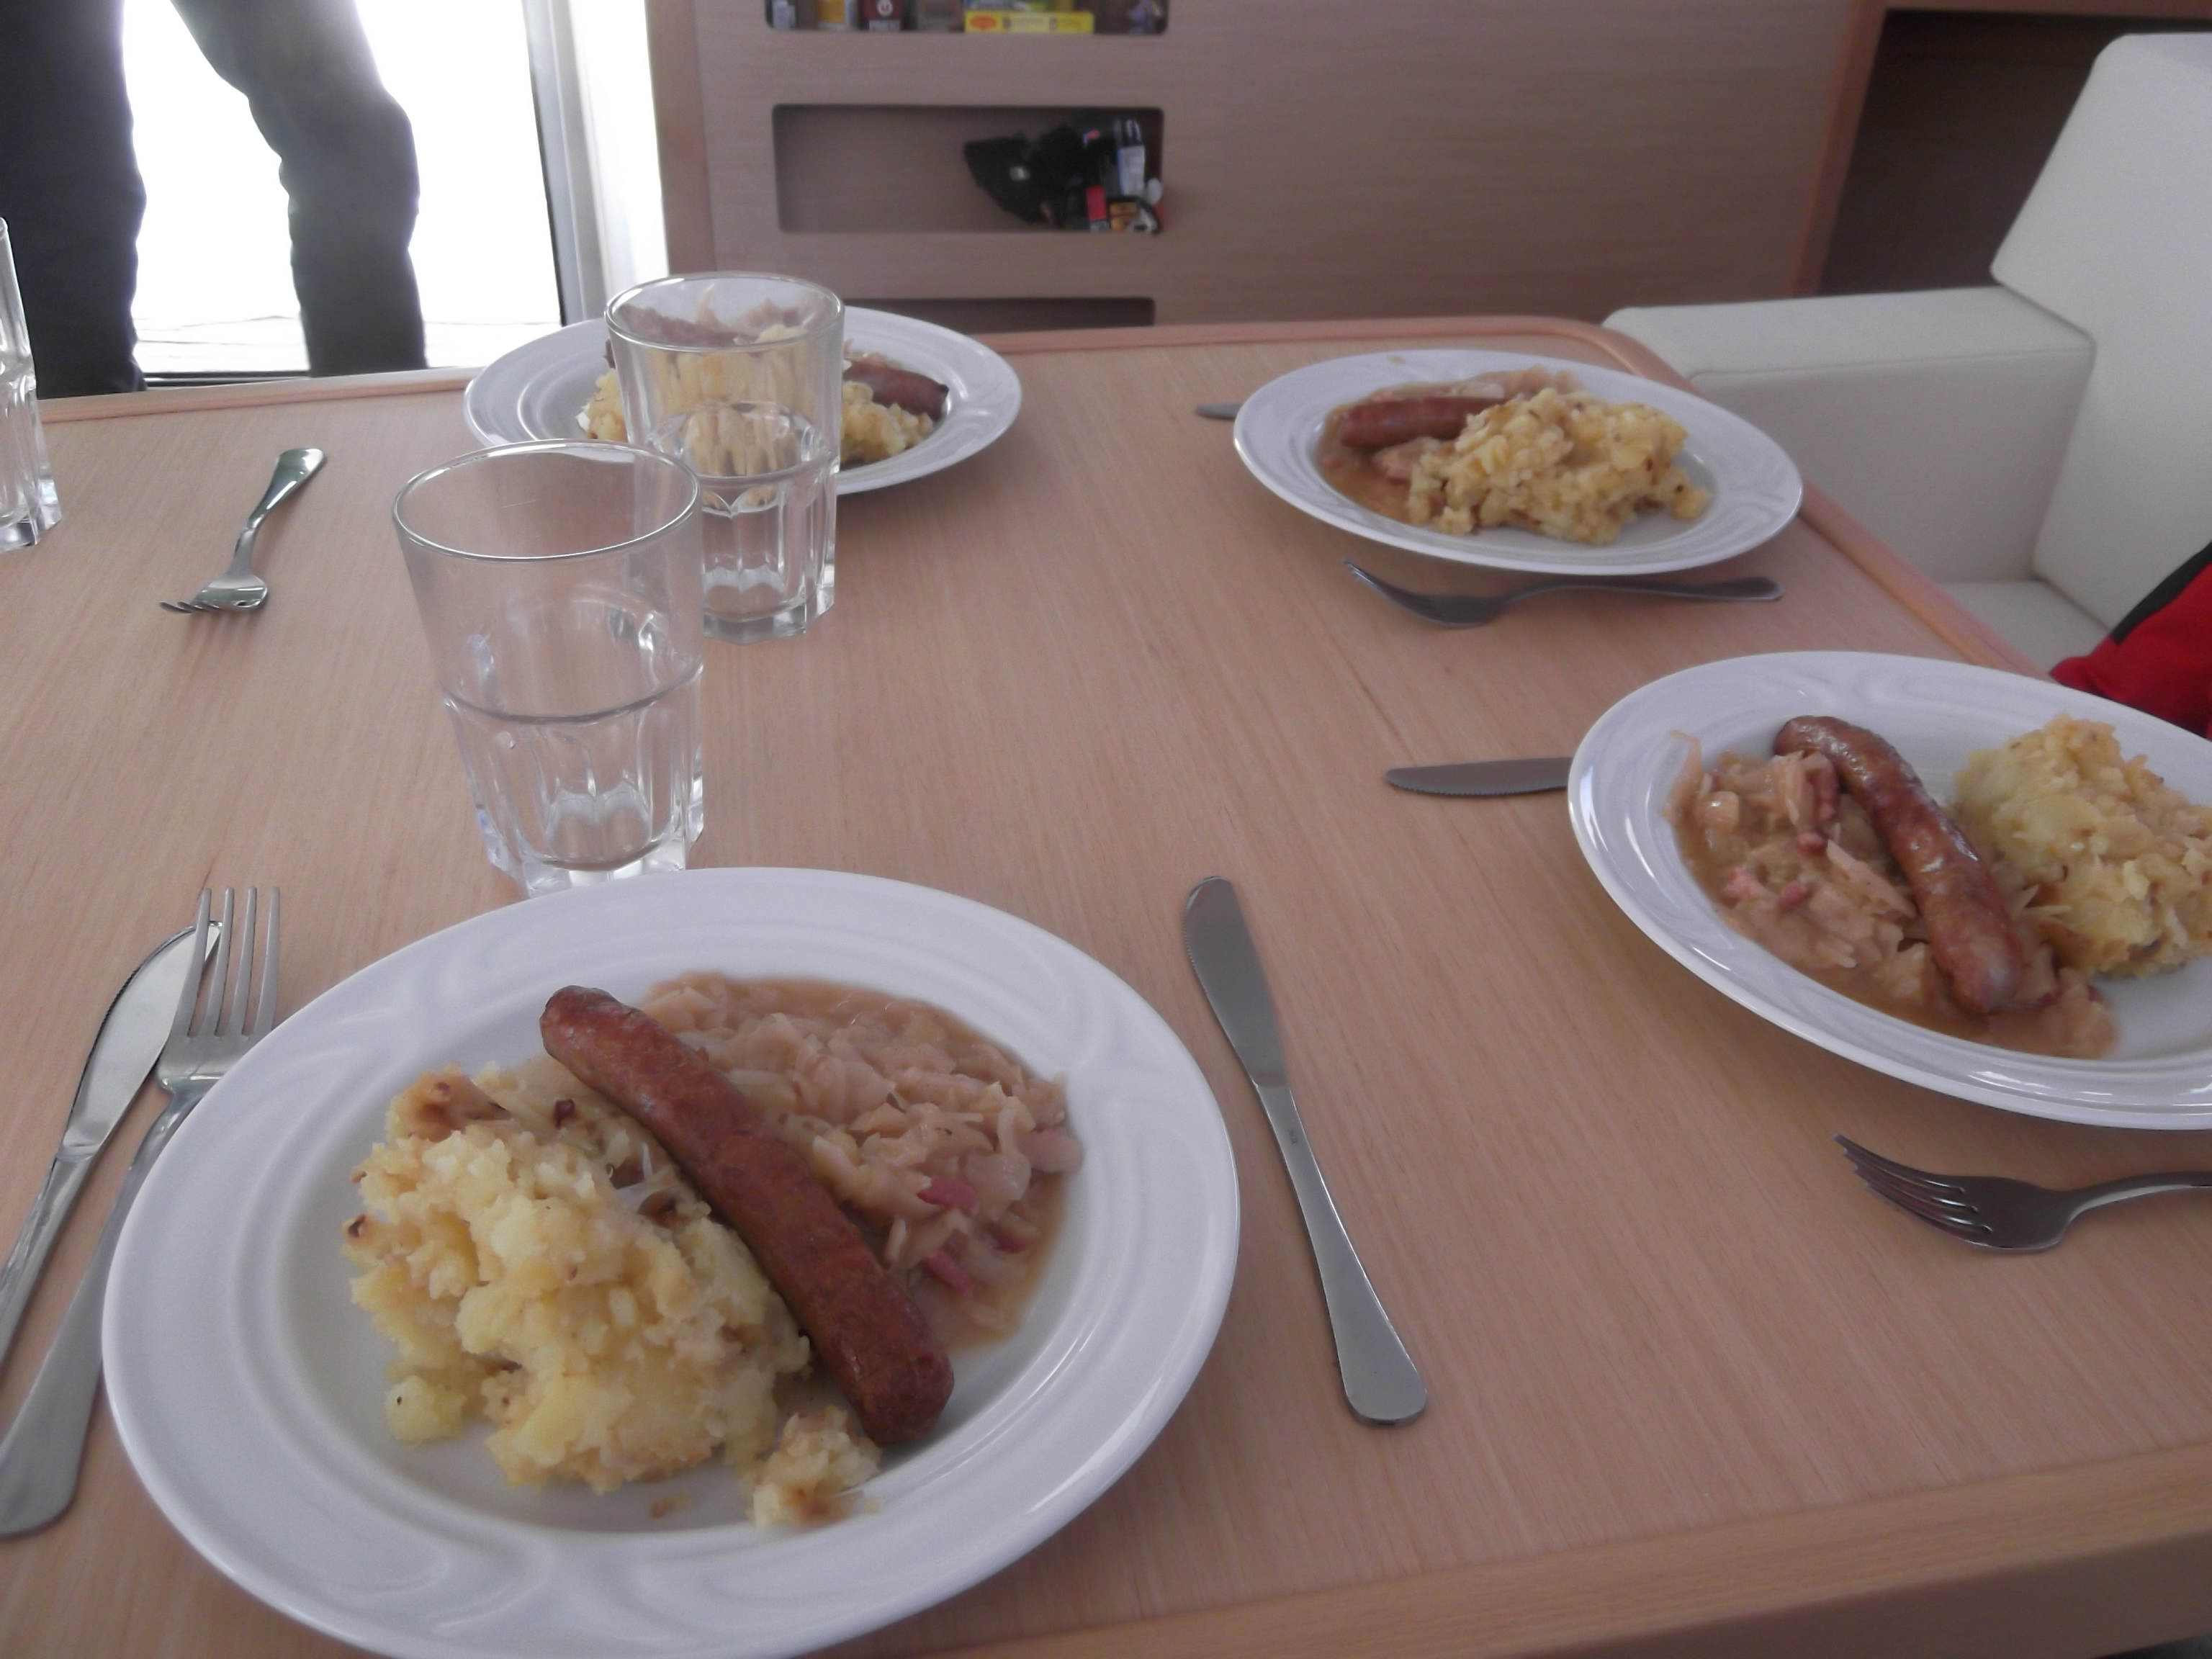 Sausages with kraut and potatoes